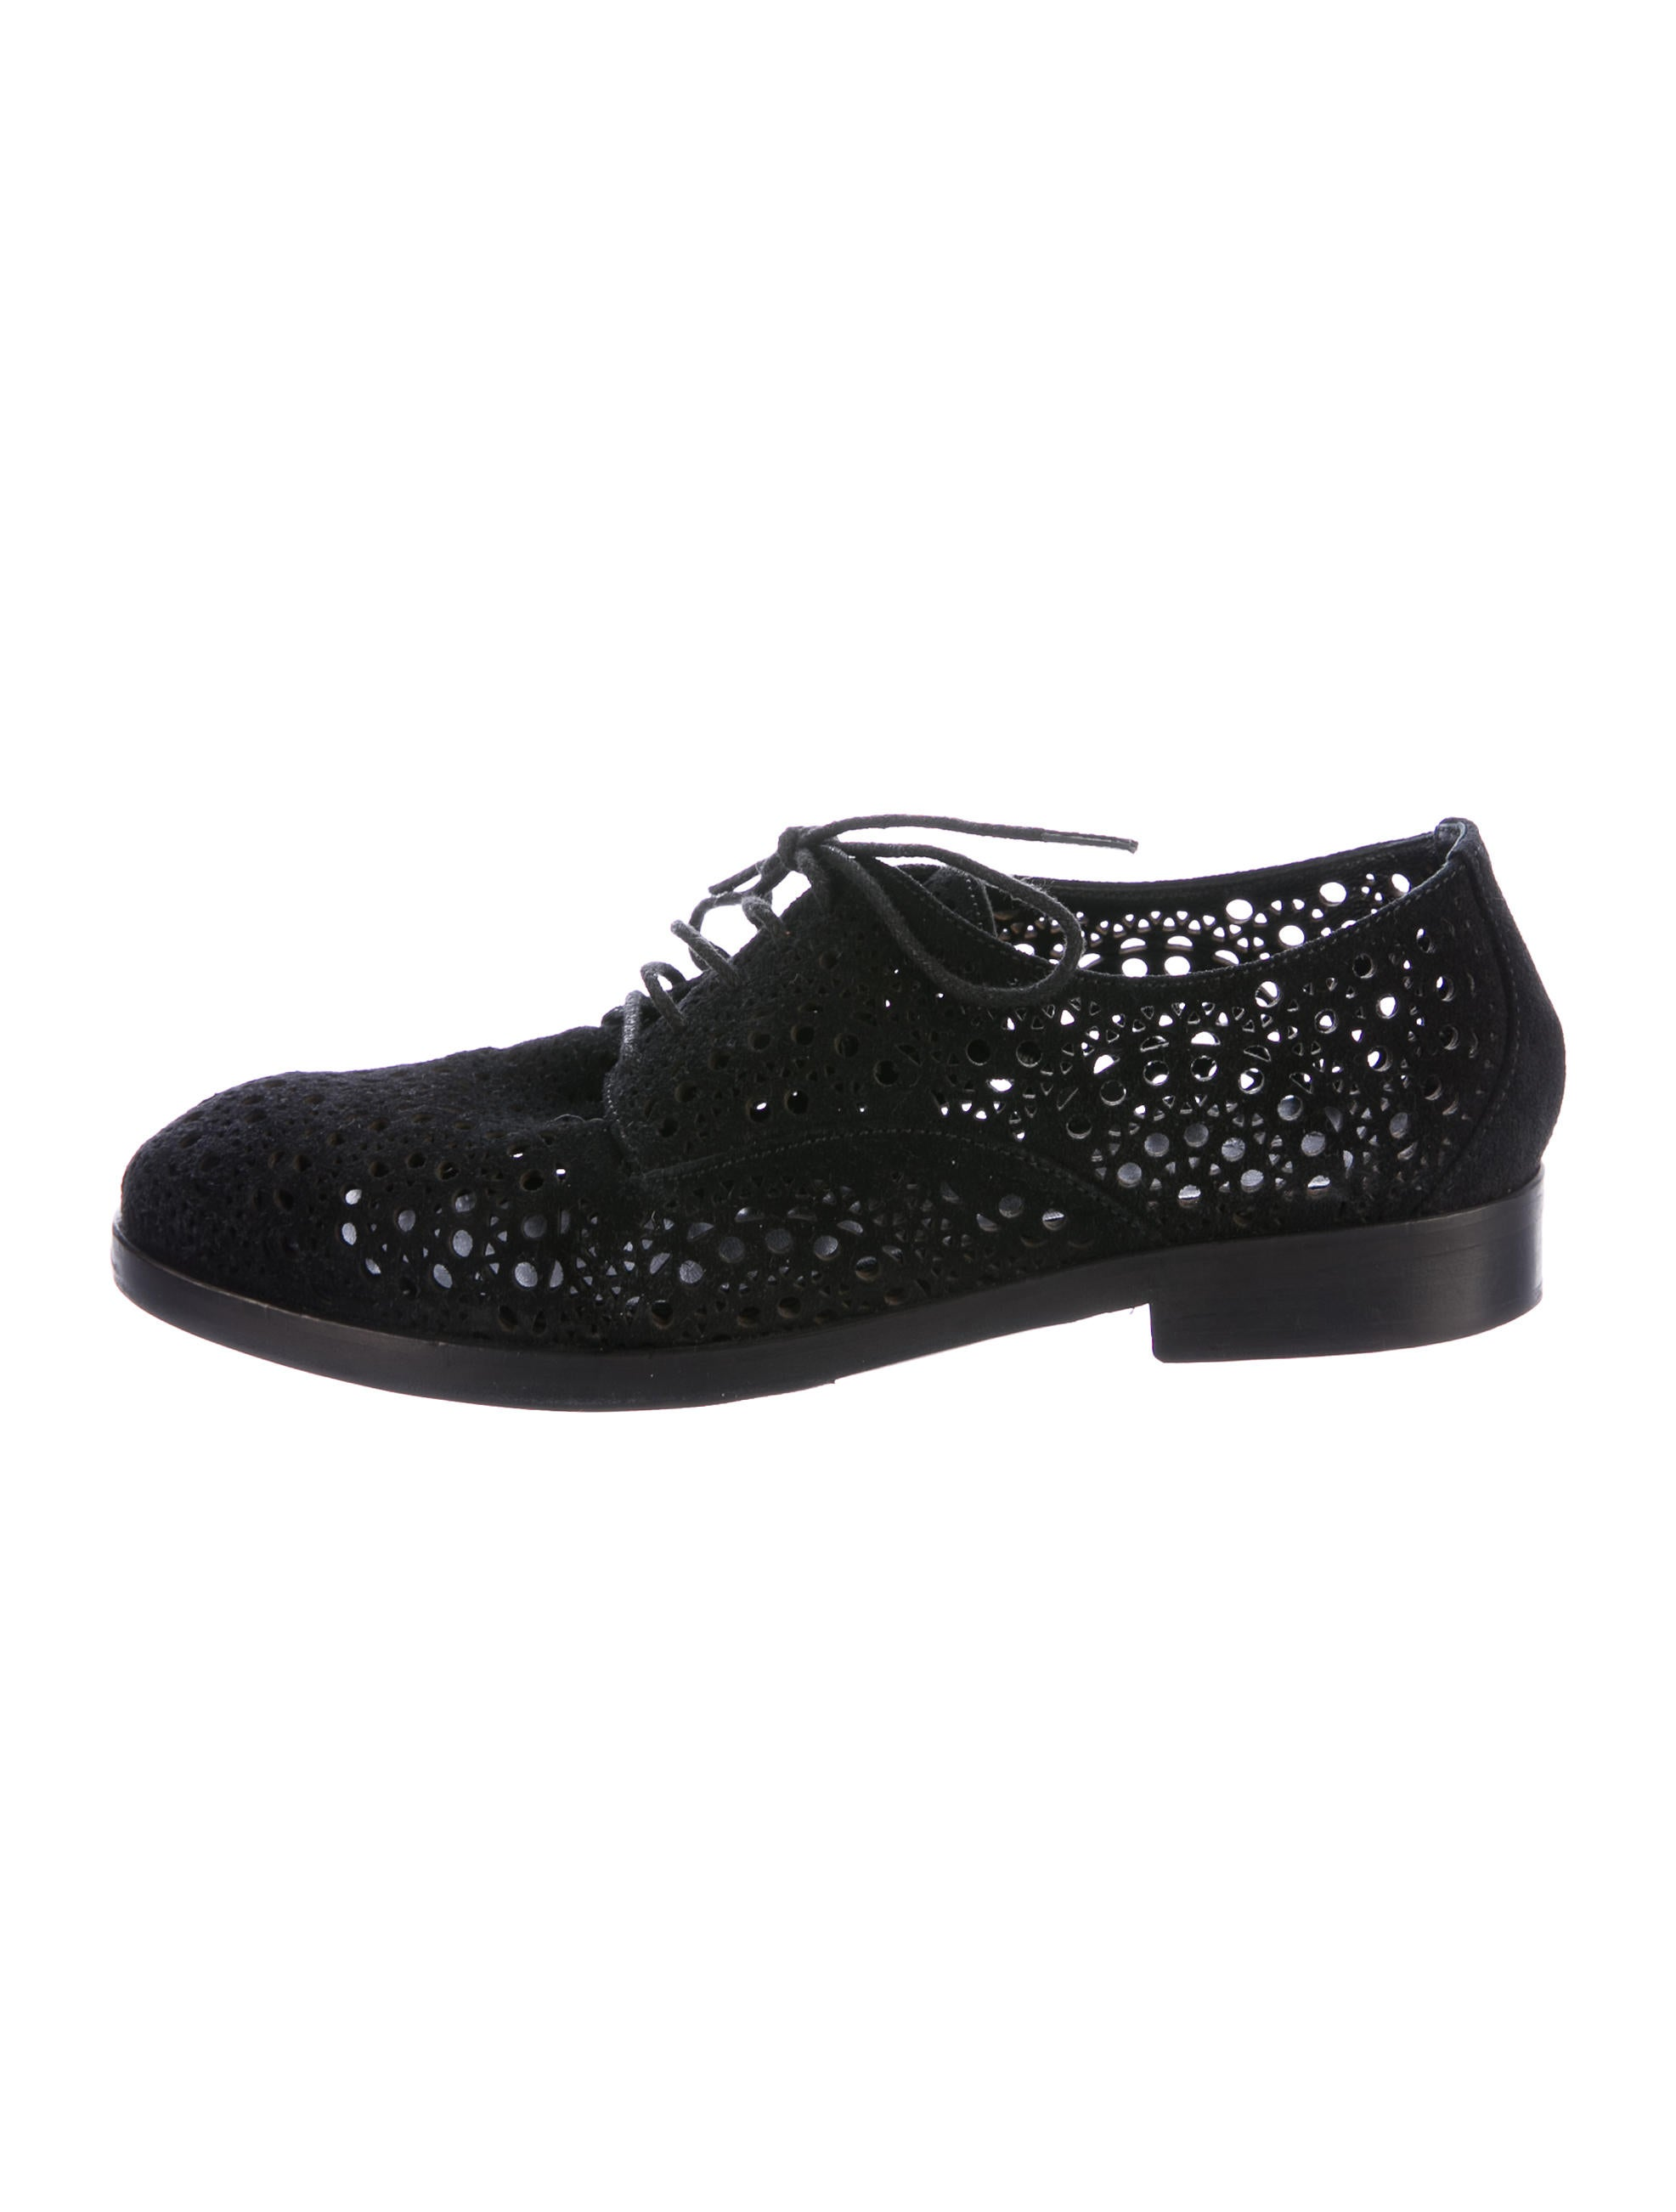 Alaïa Laser-Cut Lace-Up Oxfords cheap sale manchester great sale clearance high quality lowest price for sale cheap good selling Cj5FM0zyA